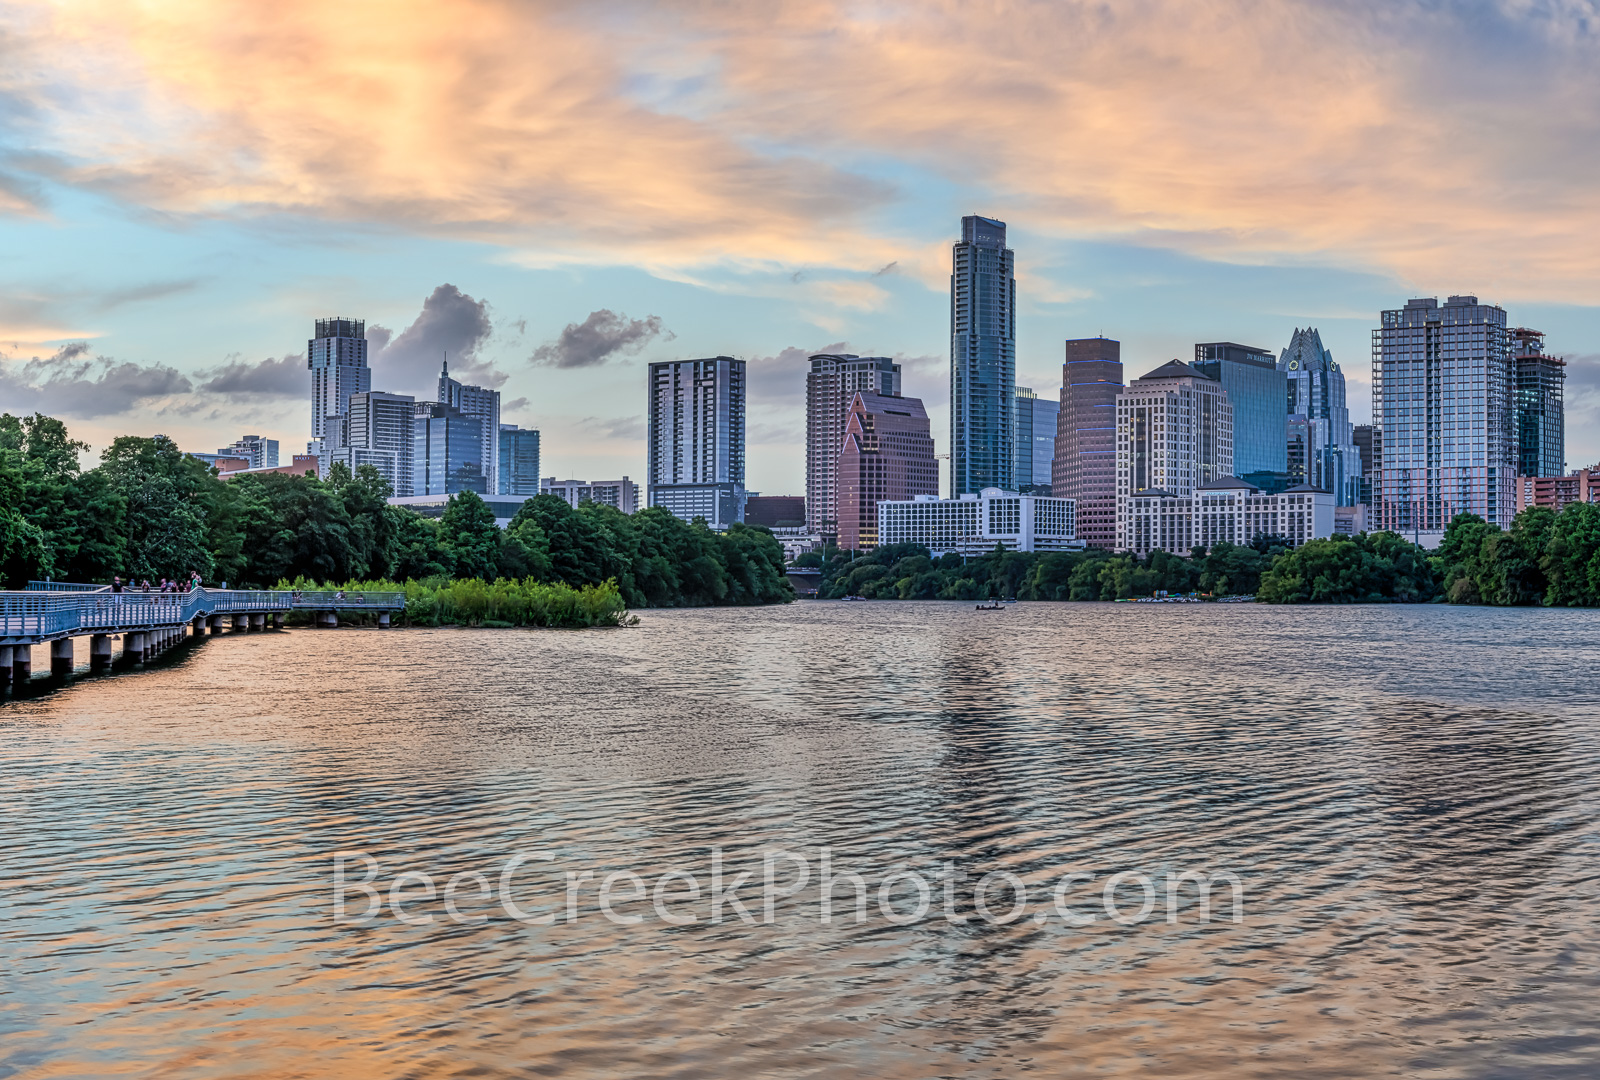 Austin Skyline, Sunset, urban, pink, glow, lady bird lake, shoreline, boardwalk, high rise, buildings, pics of texas, skyline, parks, hike and bike trails, landscape, photo